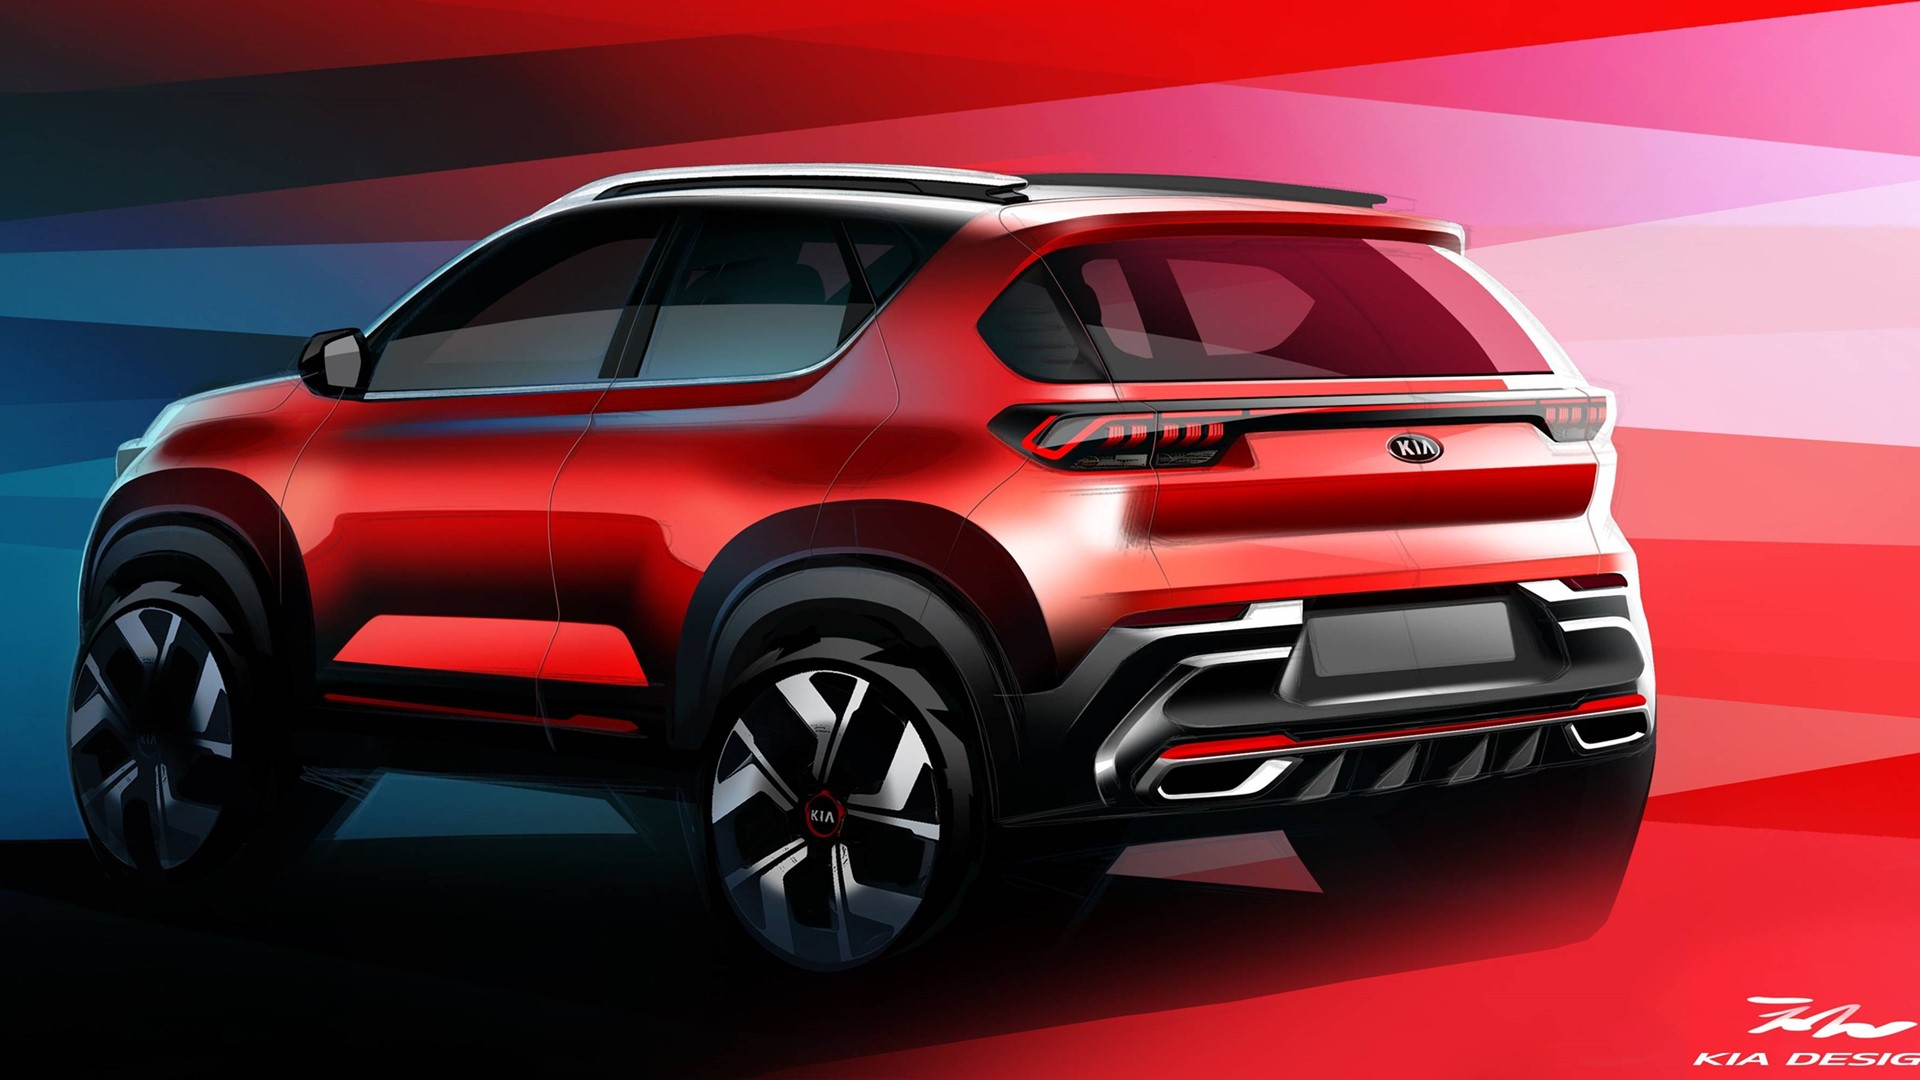 Kia Motors India releases official images of all-new Kia Sonet - Image 3